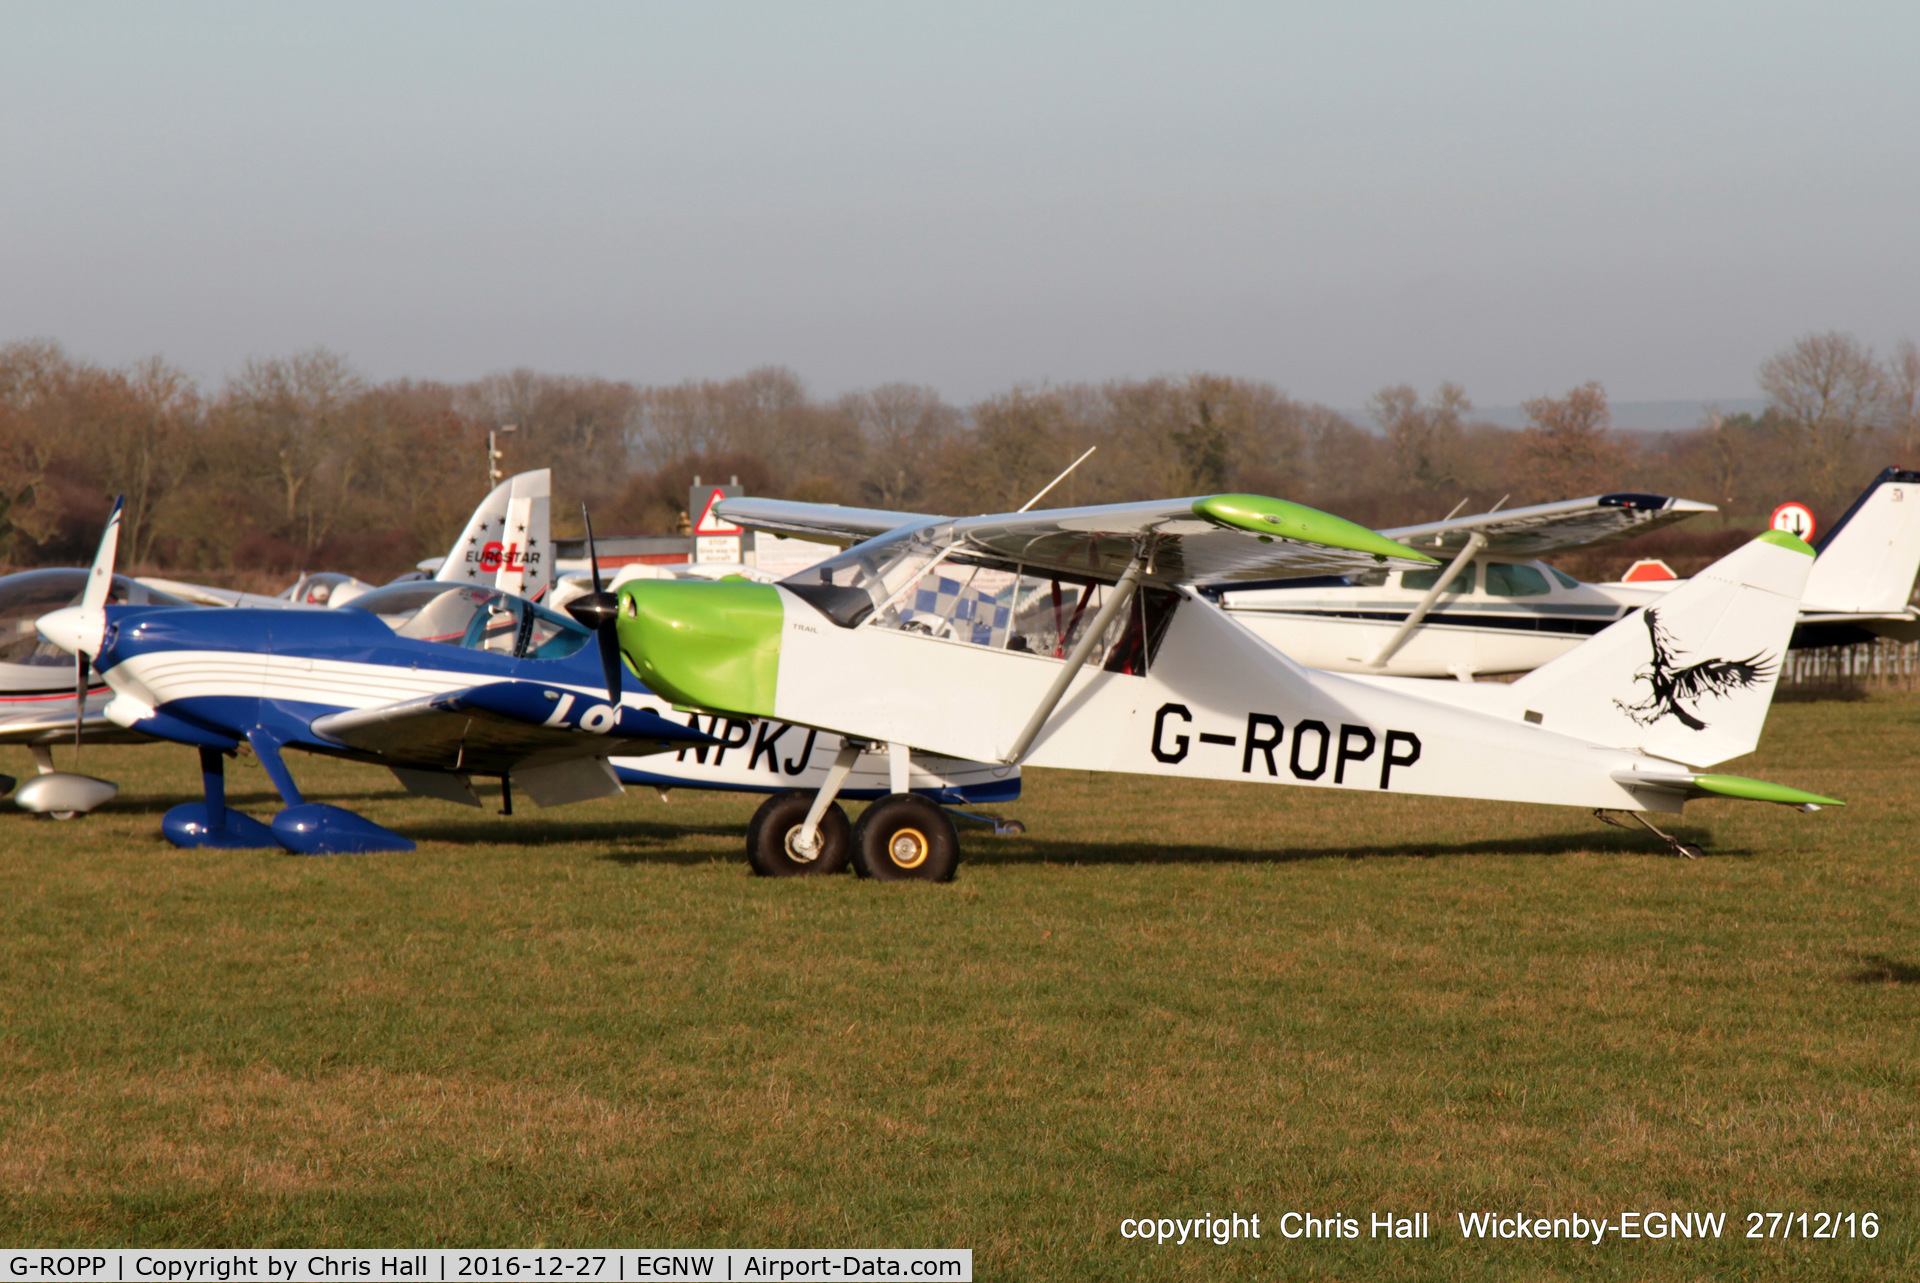 G-ROPP, 2012 Nando Groppo Trial C/N LAA 372-15178, at the Wickenby